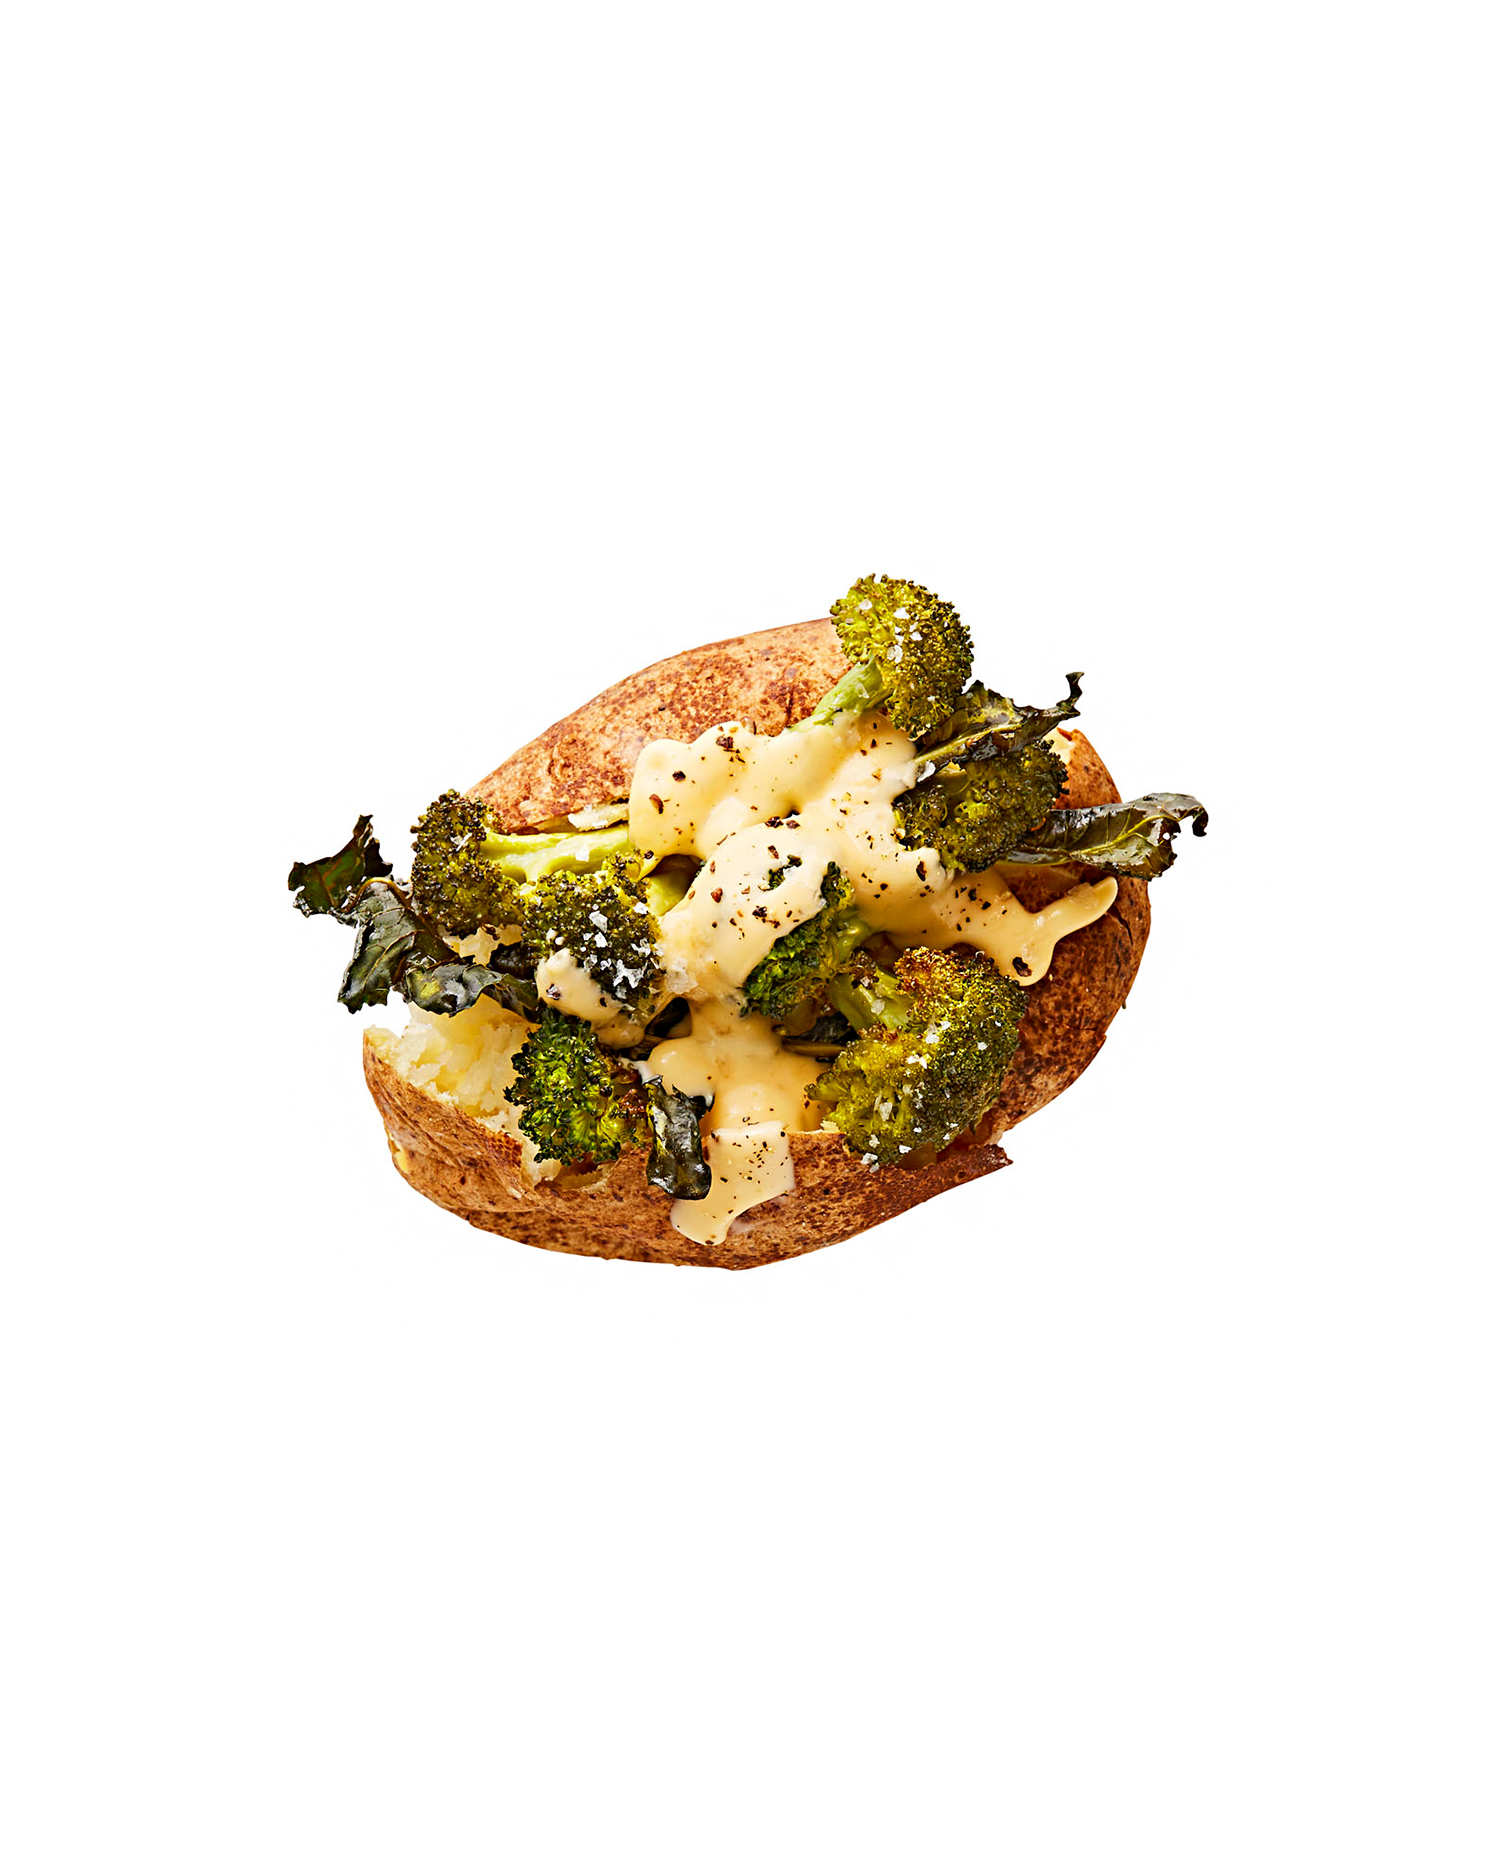 roasted broccoli with cheddar-cheese sauce baked potato